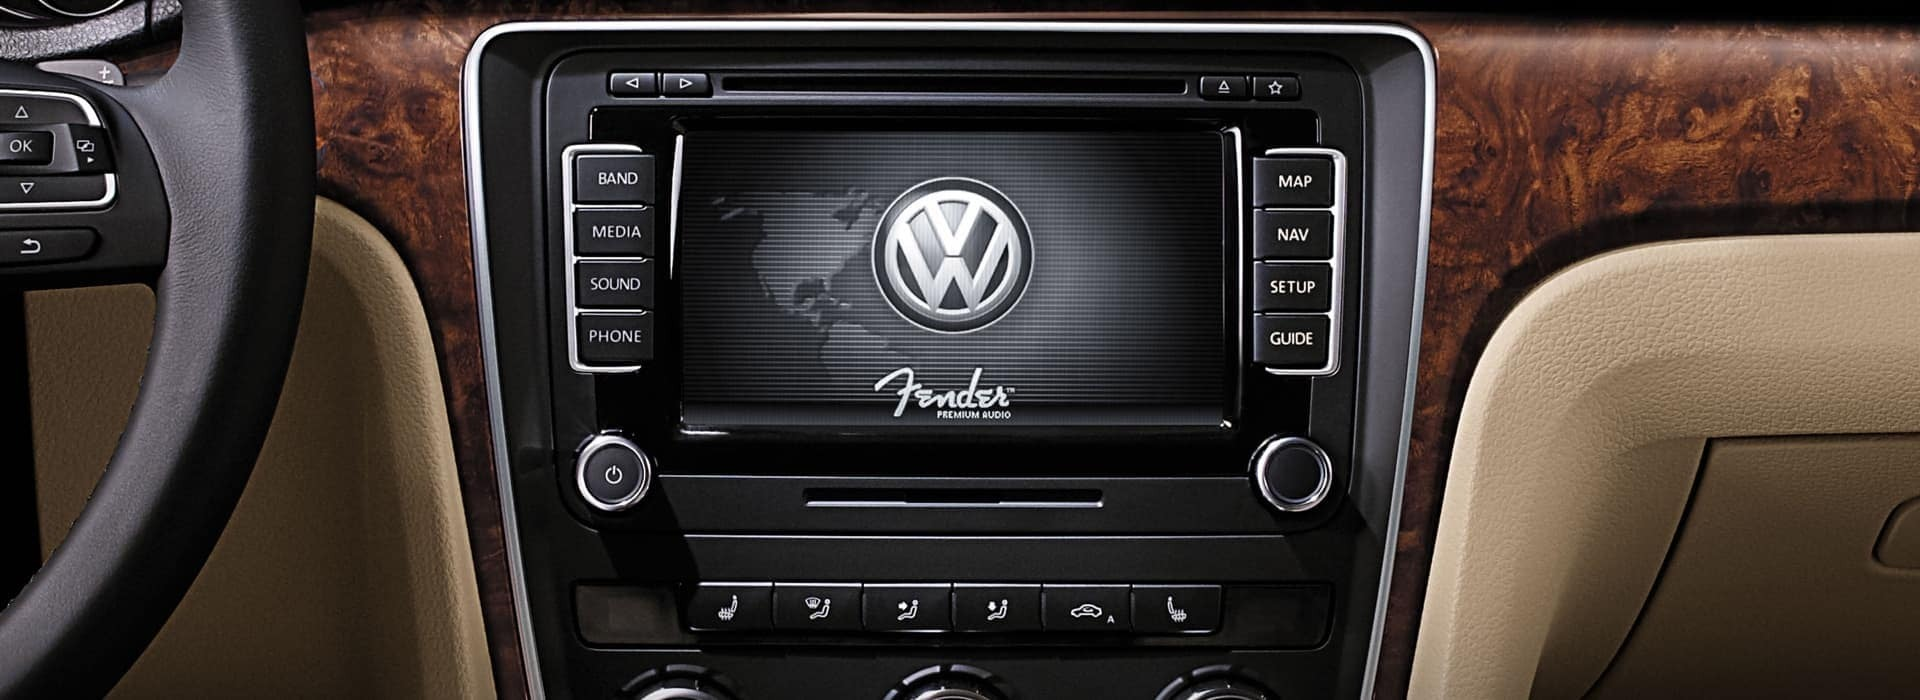 Volkswagen Fender Premium Feature